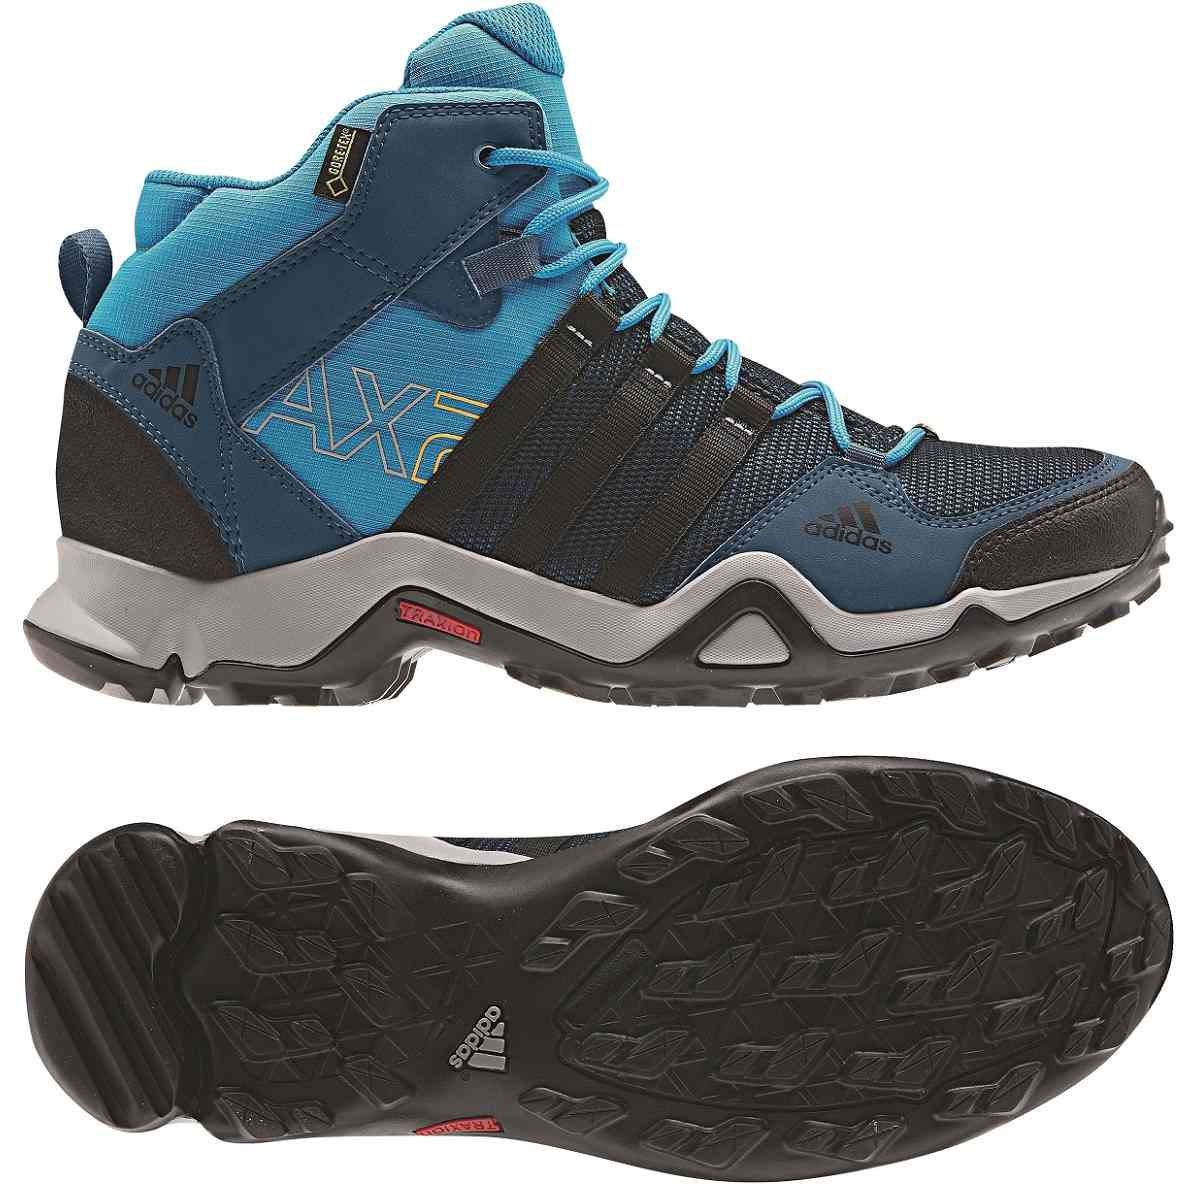 adidas ax2 mid gtx gore tex schuhe wanderstiefel outdoor. Black Bedroom Furniture Sets. Home Design Ideas